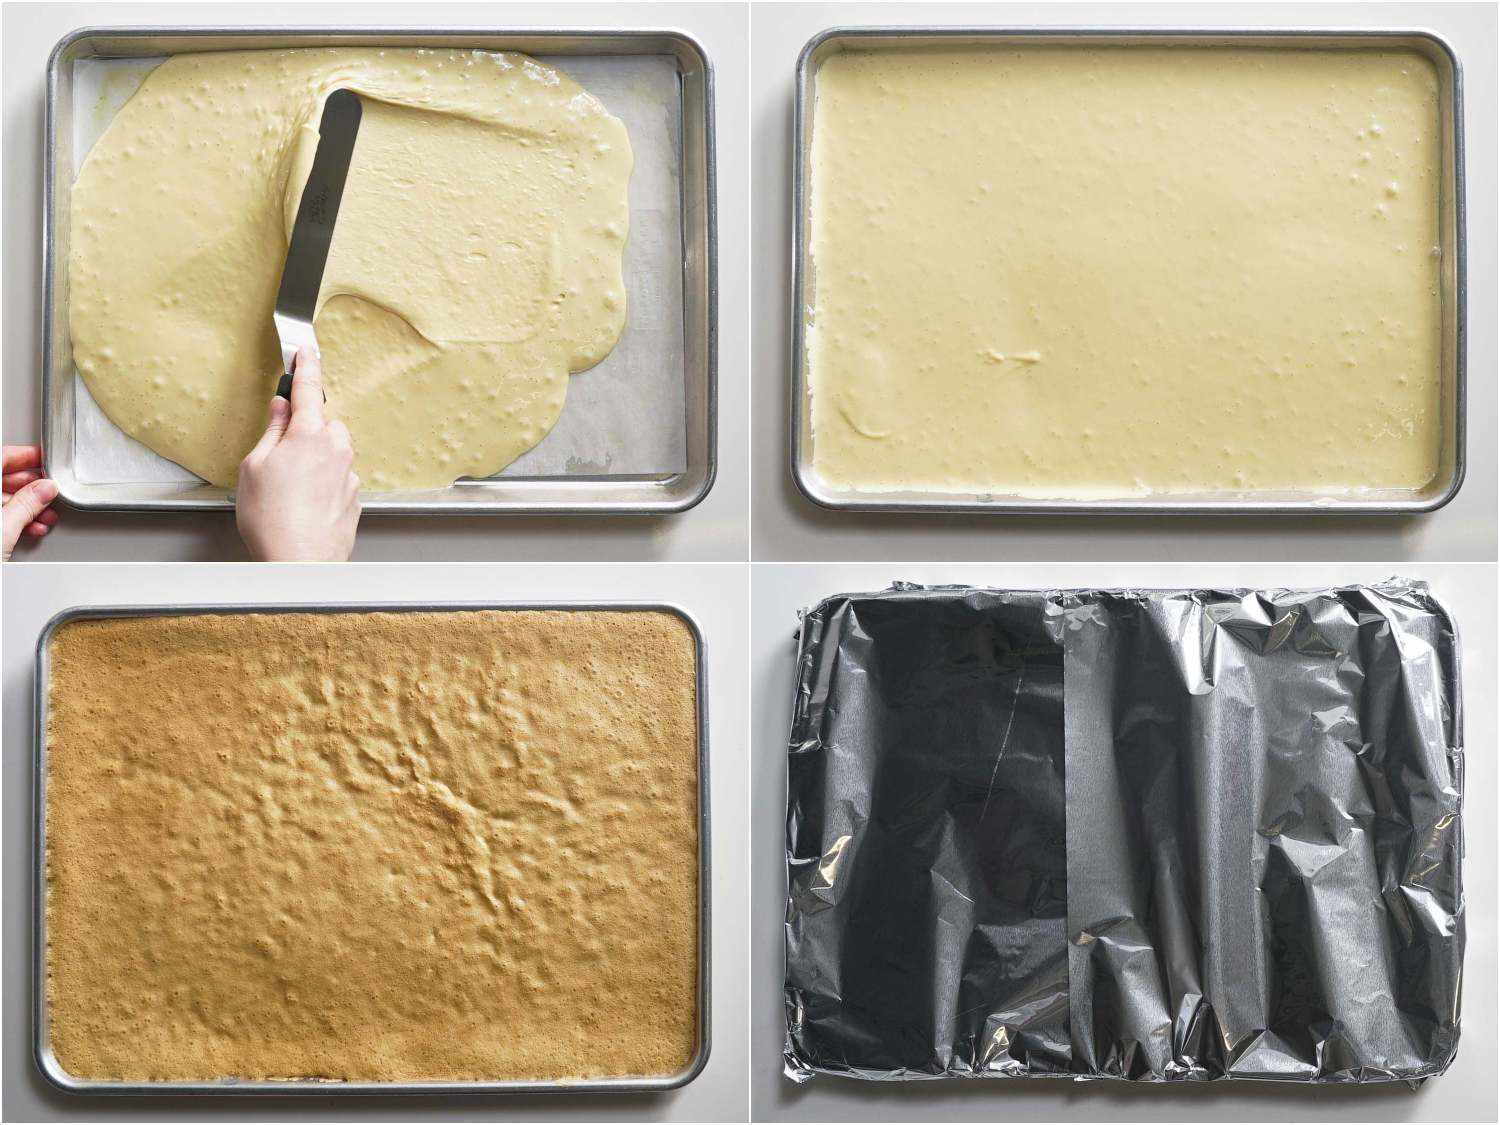 Smoothing the jelly roll batter into an even layer, baking until golden brown, and cooling under foil